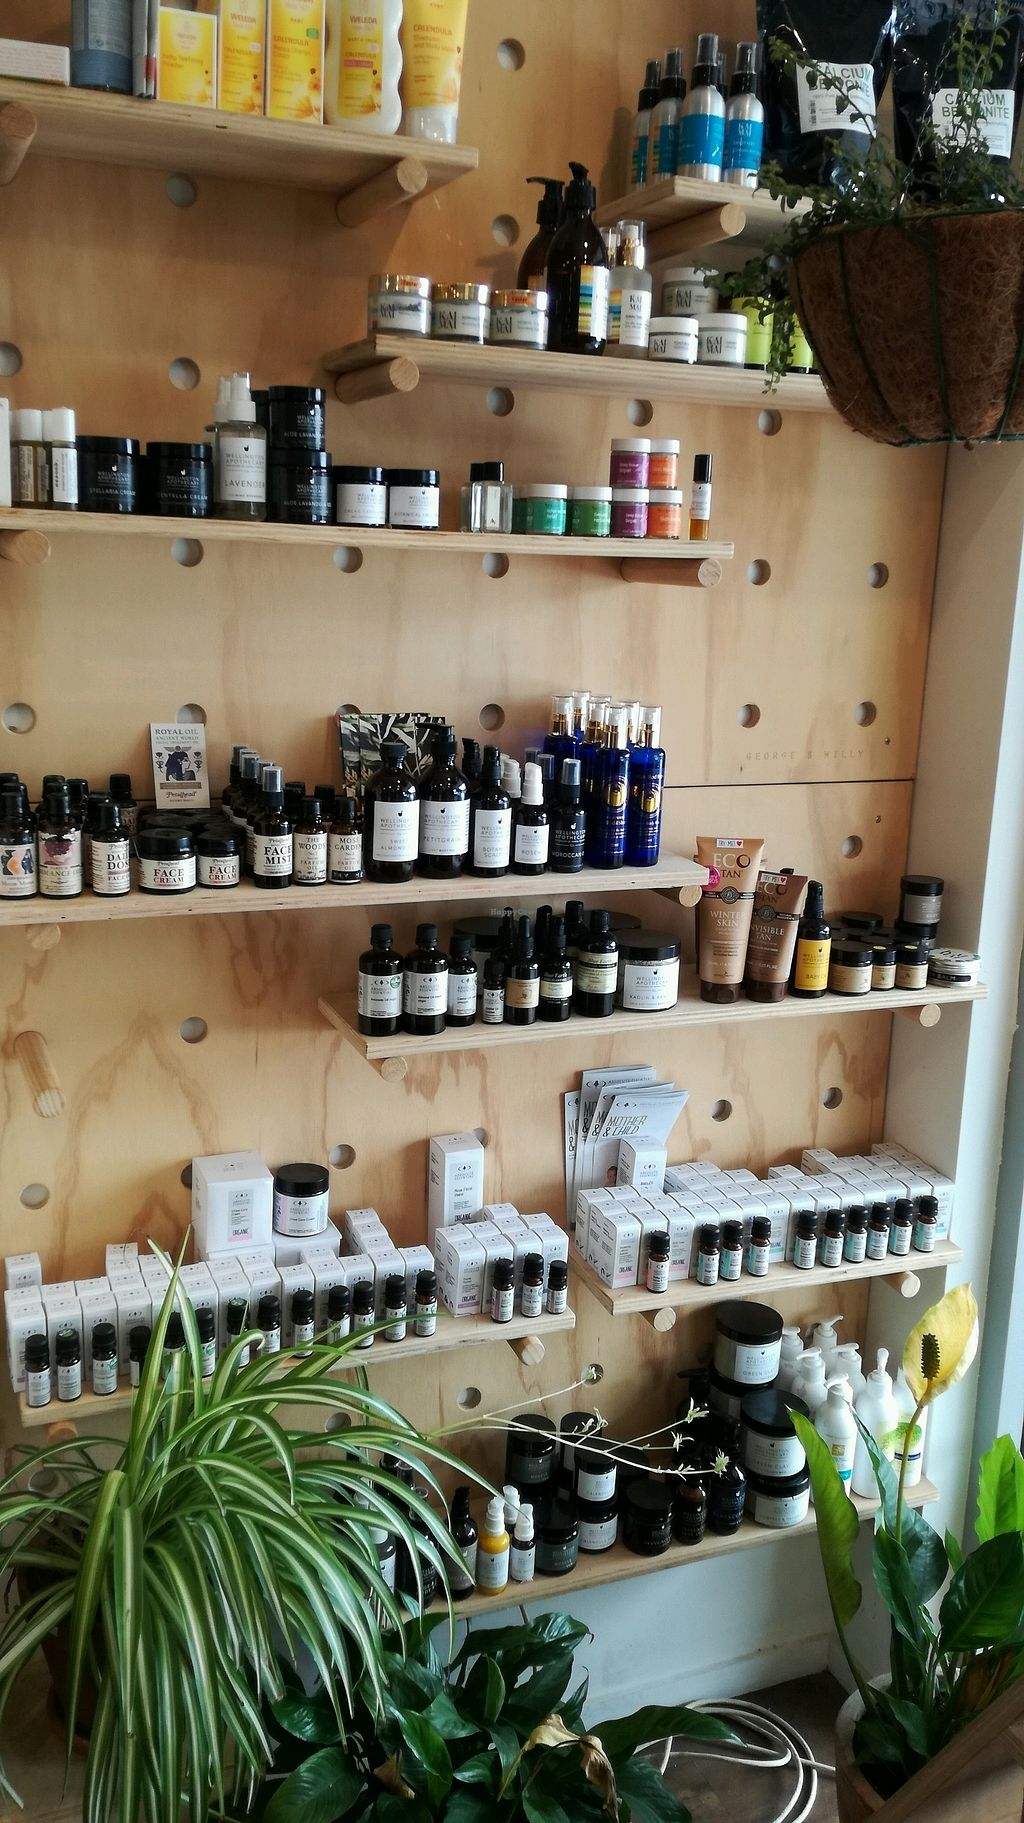 """Photo of Be Organics  by <a href=""""/members/profile/evajelen"""">evajelen</a> <br/>beauty section <br/> January 24, 2018  - <a href='/contact/abuse/image/109841/350254'>Report</a>"""